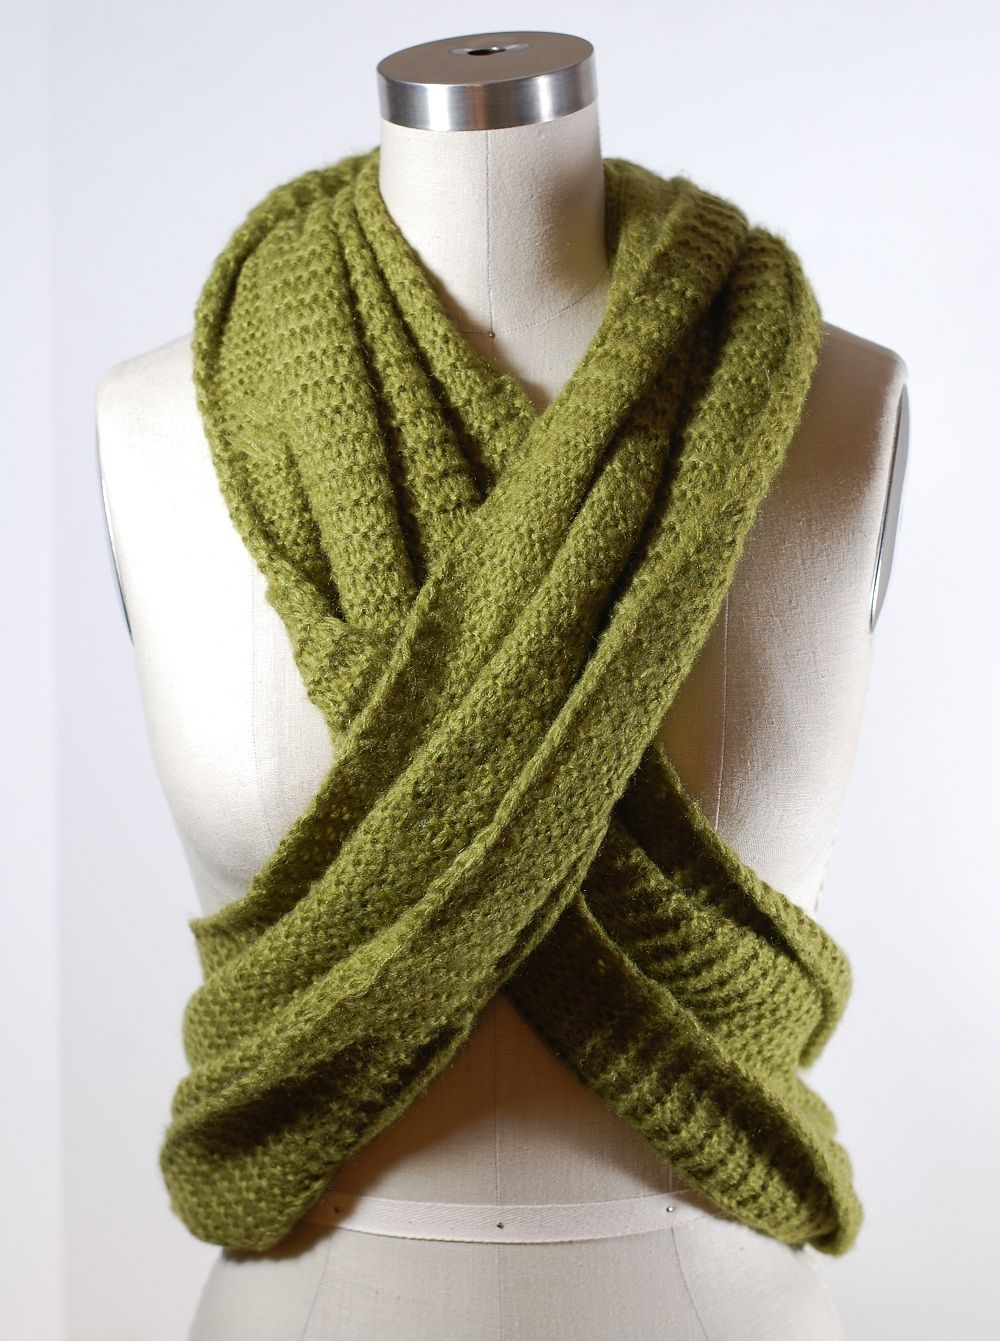 How to infinity wear scarf pinterest best photo